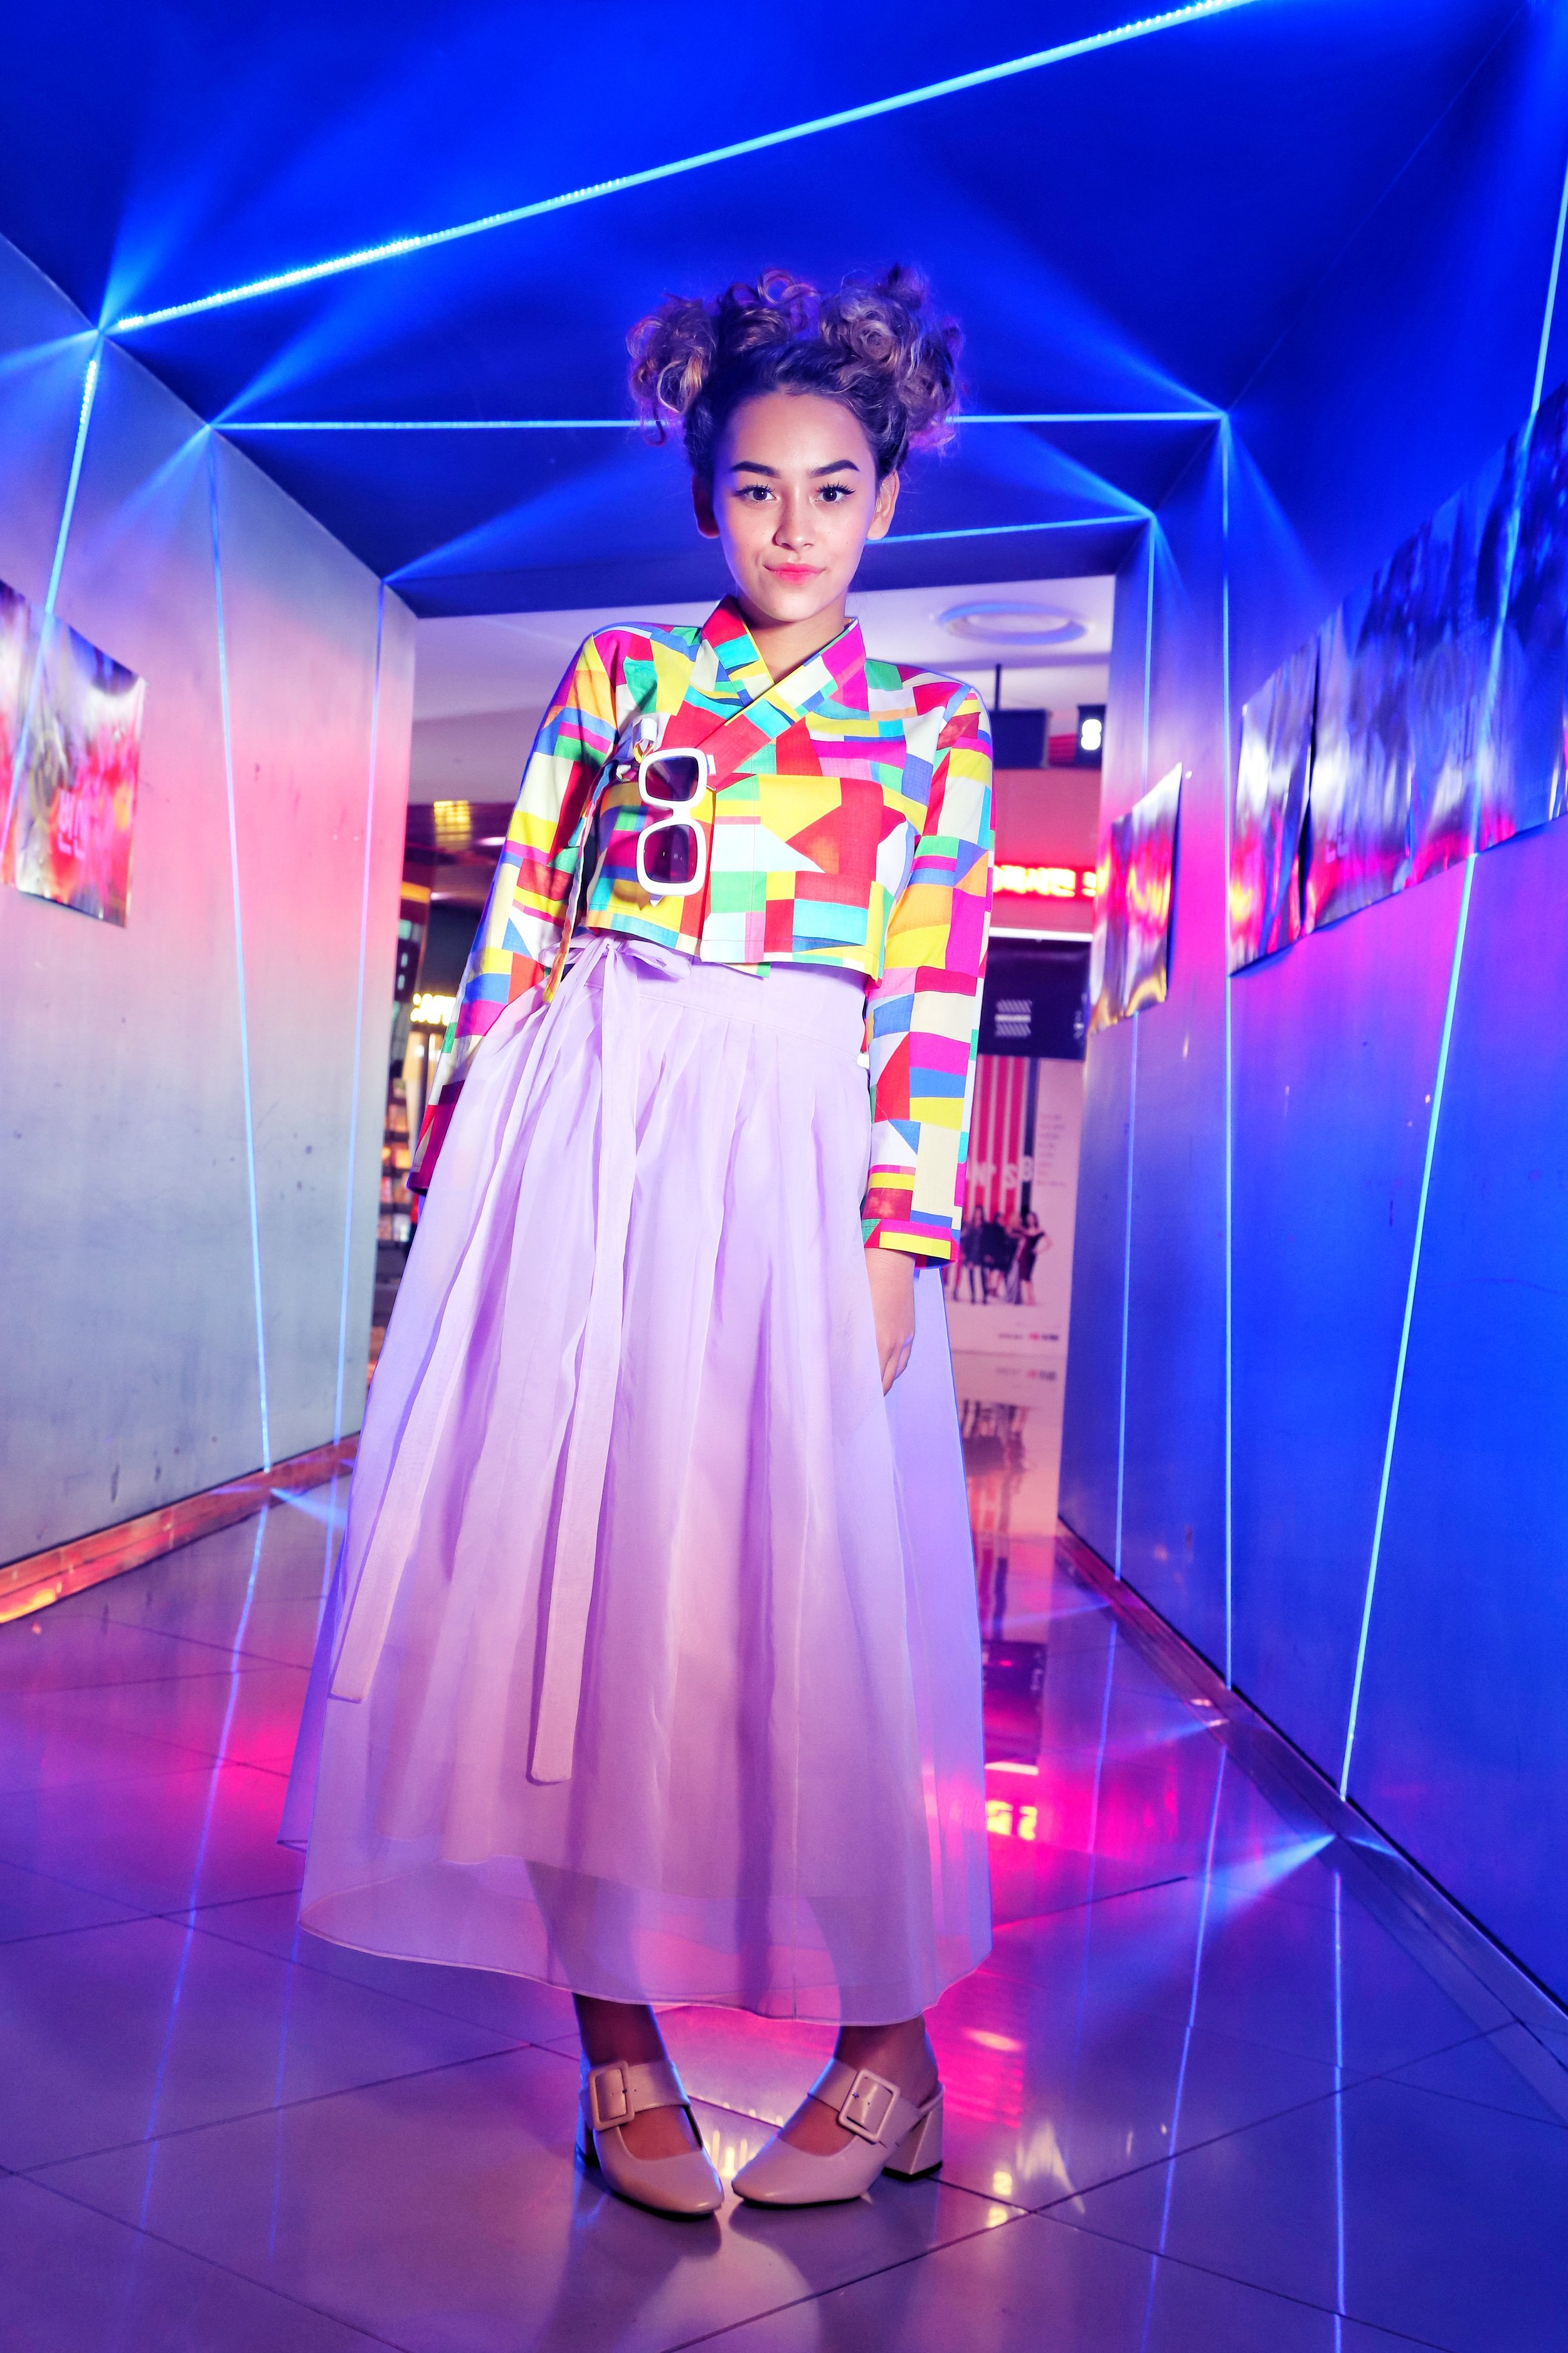 A full body shot that's a bit more than the standard shot of this type, adding in a bit of editorial and pizzazz, a bit of pre-modern and hypermodern Korean cultural elements, and a bit of the model's youthfulness. This was Zyon's favorite  hanbok  of the three the designer lent us.